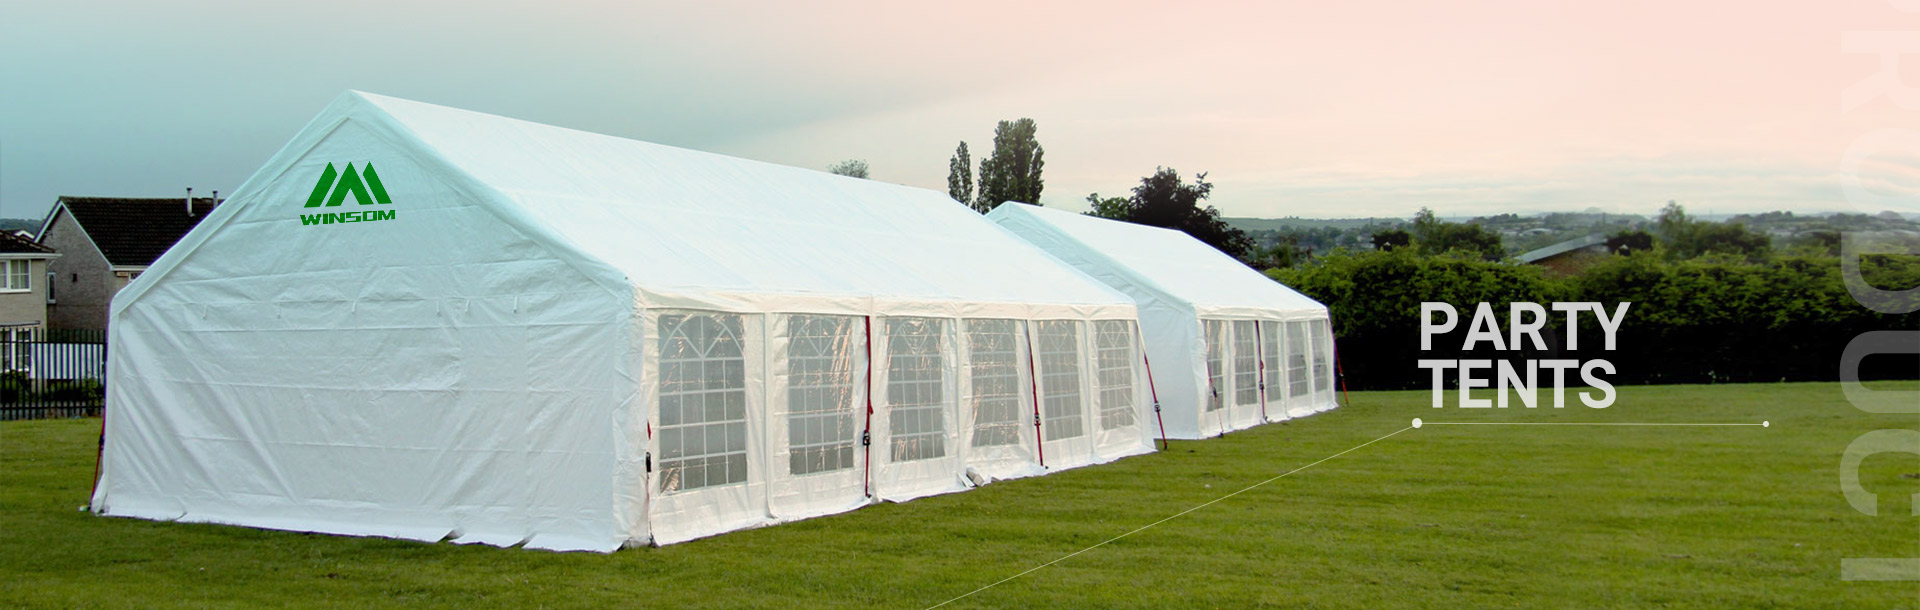 Party Tent-2